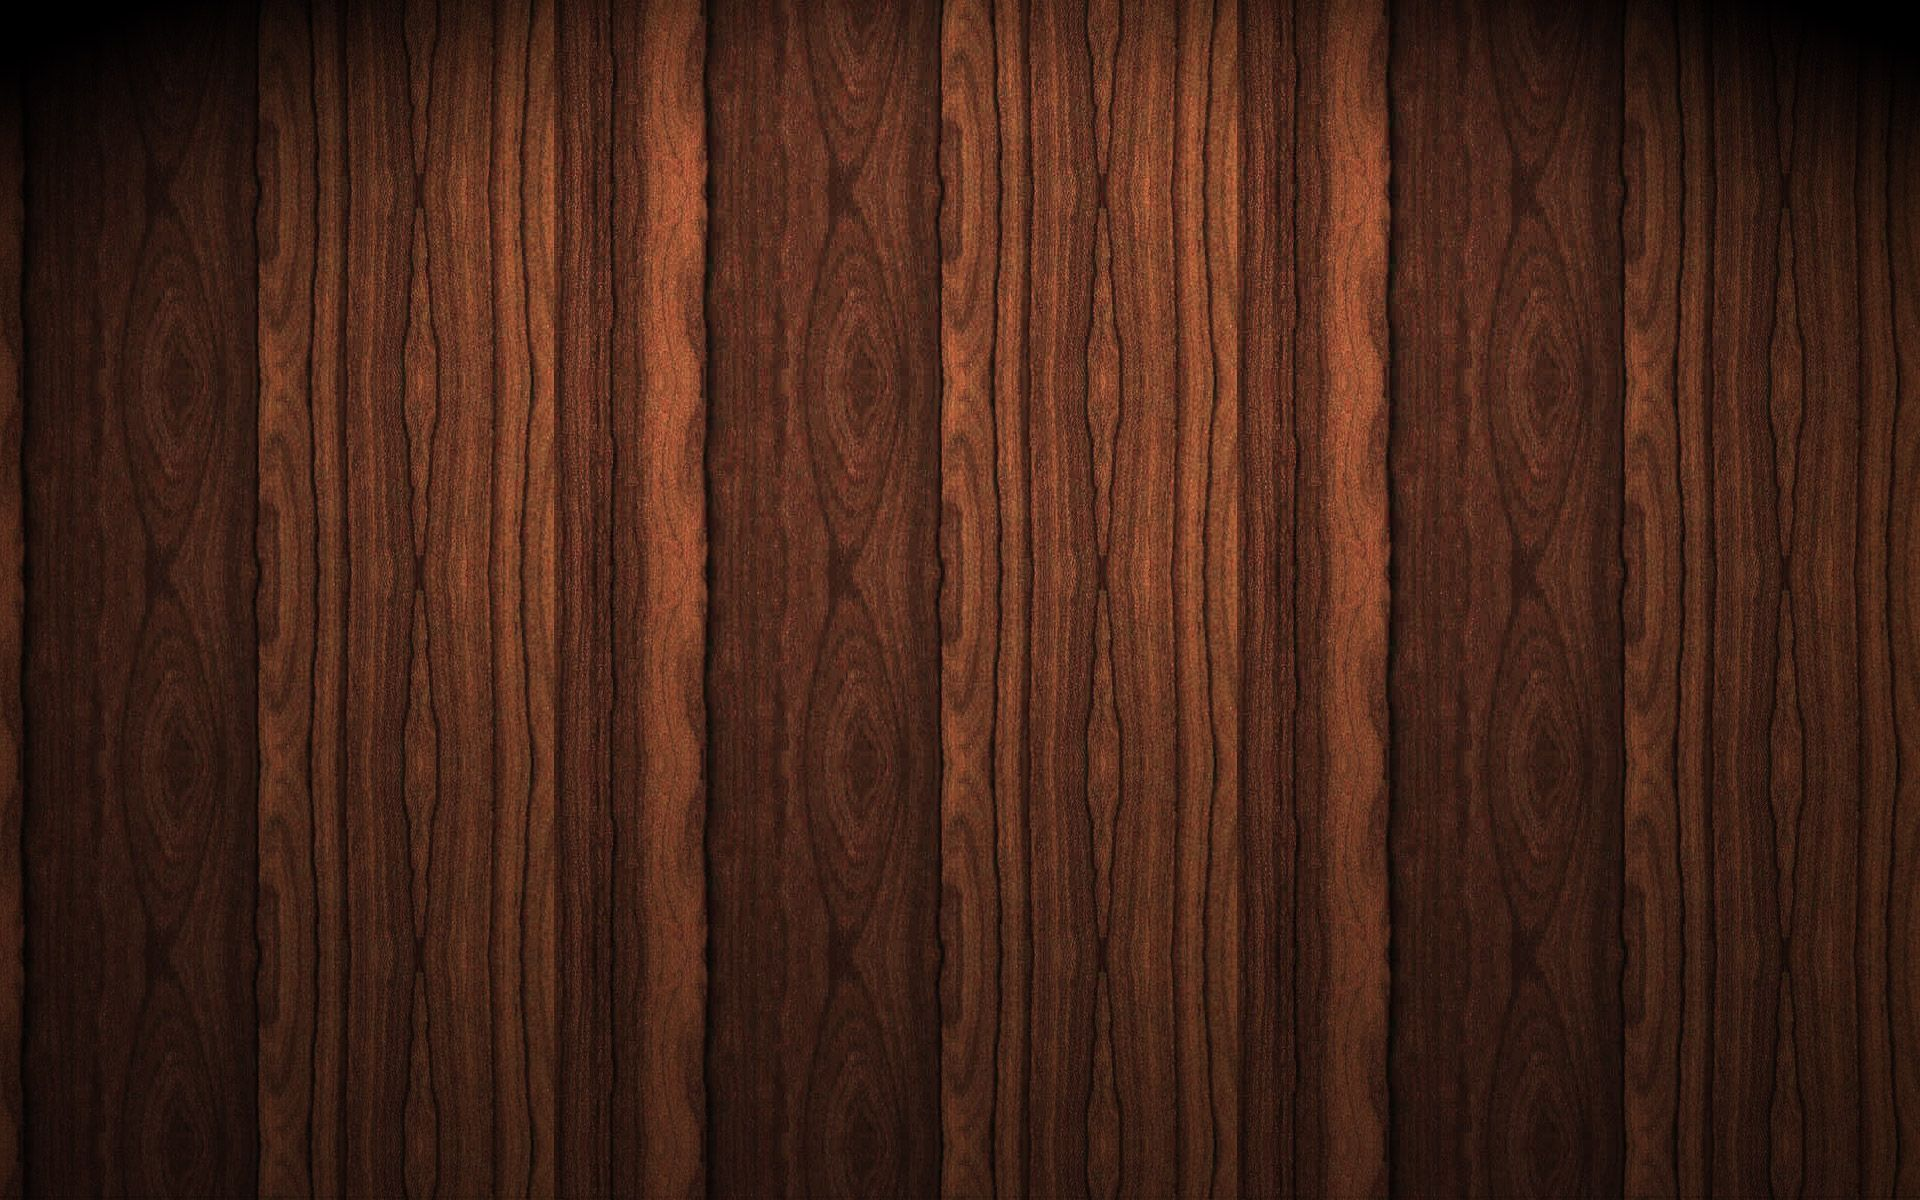 Wood Furniture Texture wood furniture texture hd p hd wallpapers exhibition 1920×1080